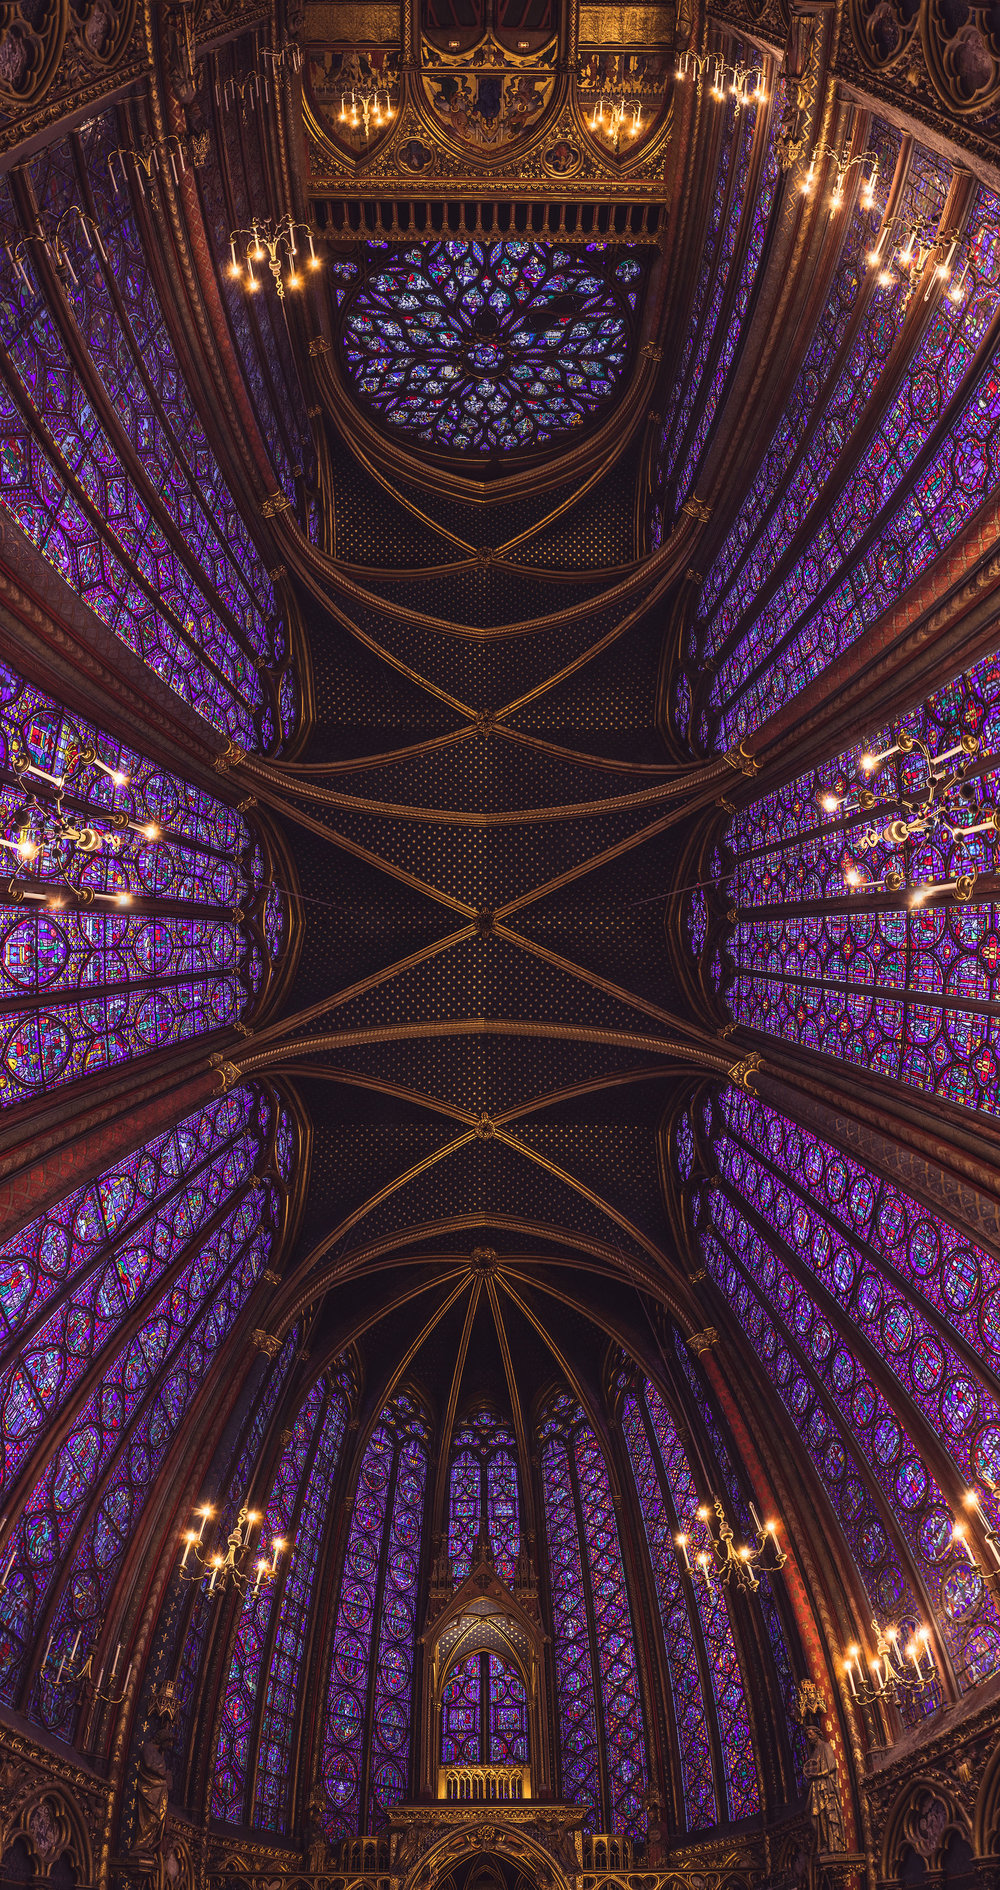 Starry Starry Night - the ceiling of Sainte-Chapelle in its full glory, January 2018